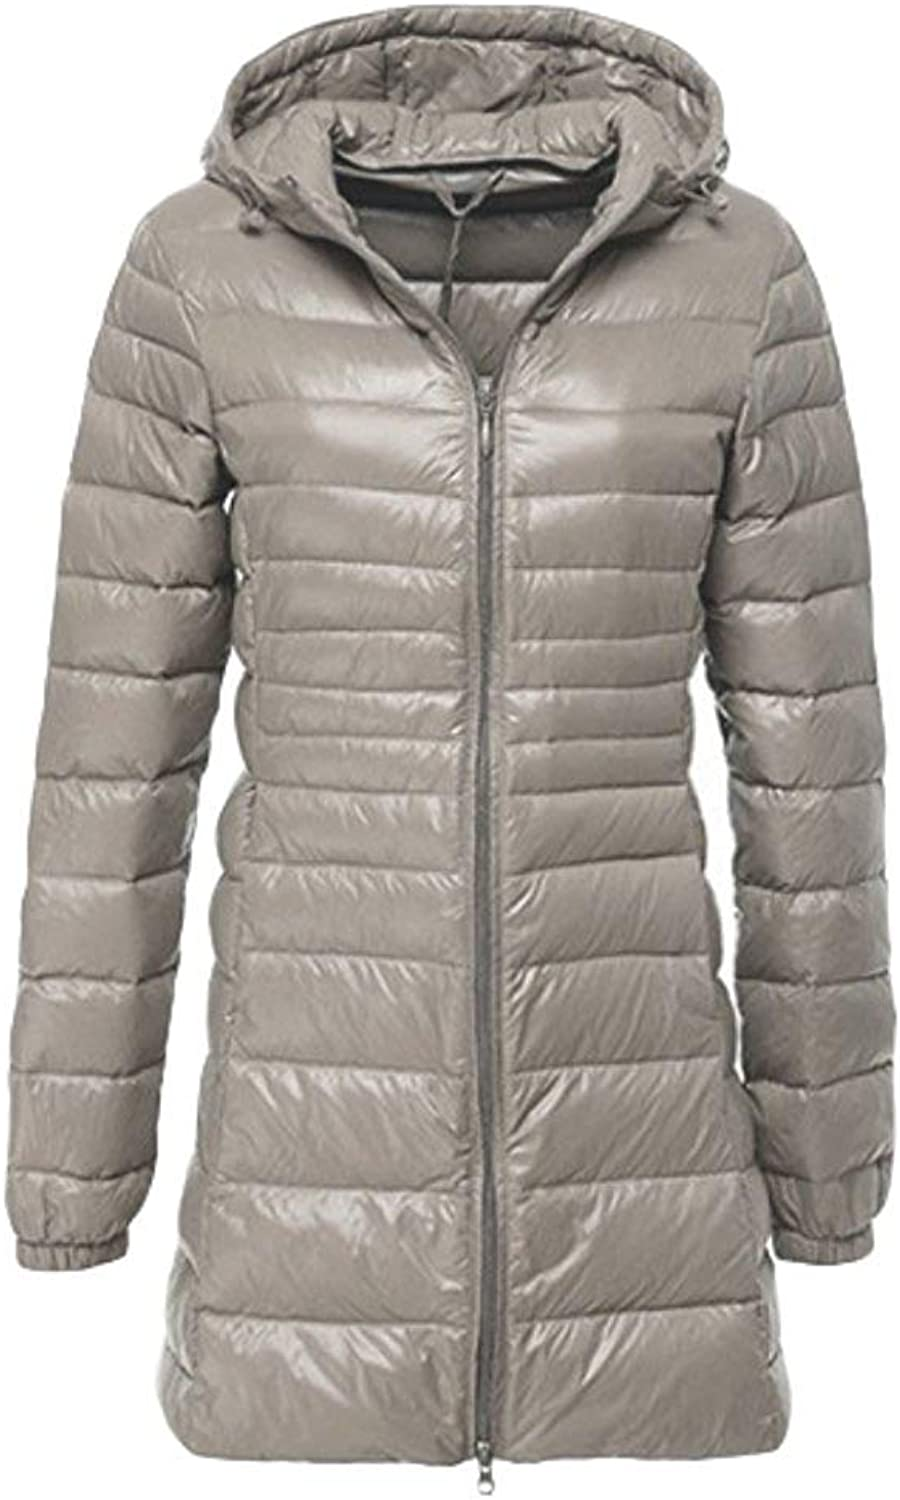 Oudan Women's Down Jacket Quilted Jacket Ultra Lightweight Hooded Jacket Long Down Coat SXXL (color   Light Grey, Size   XXL)